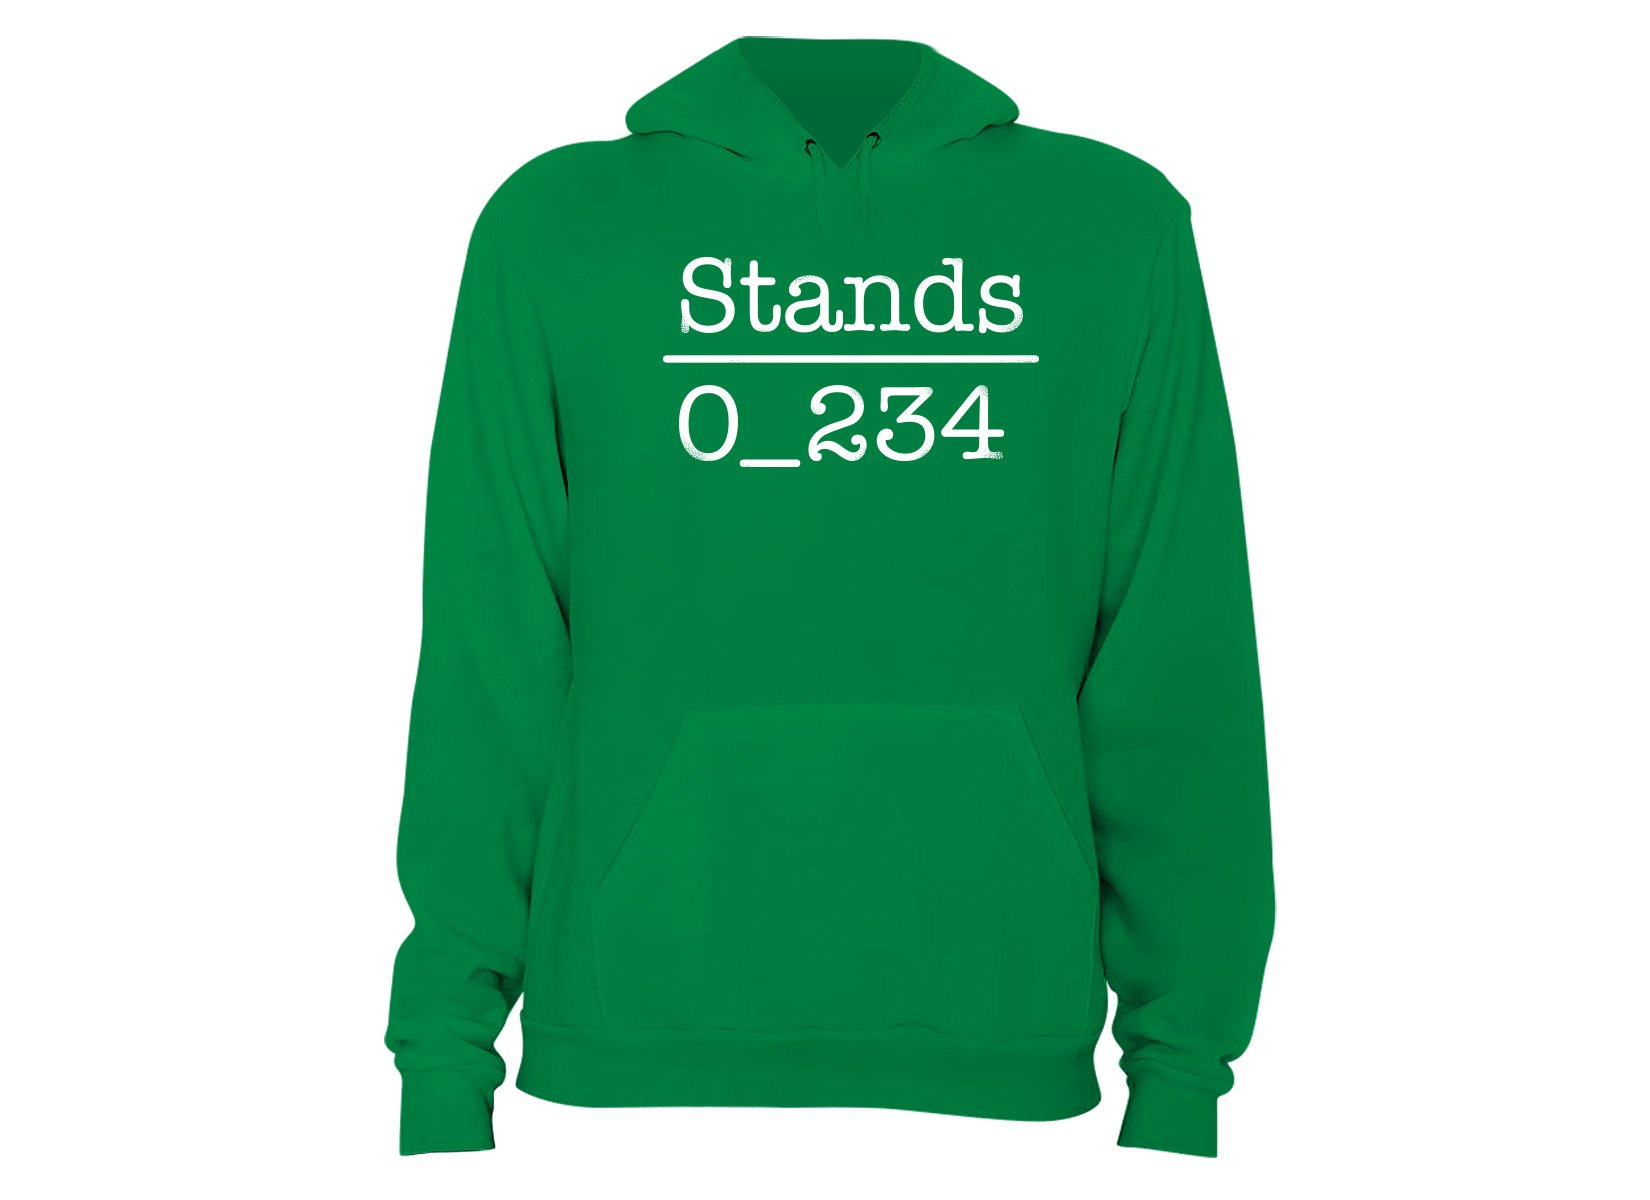 No 1 Under Stands on Hoodie